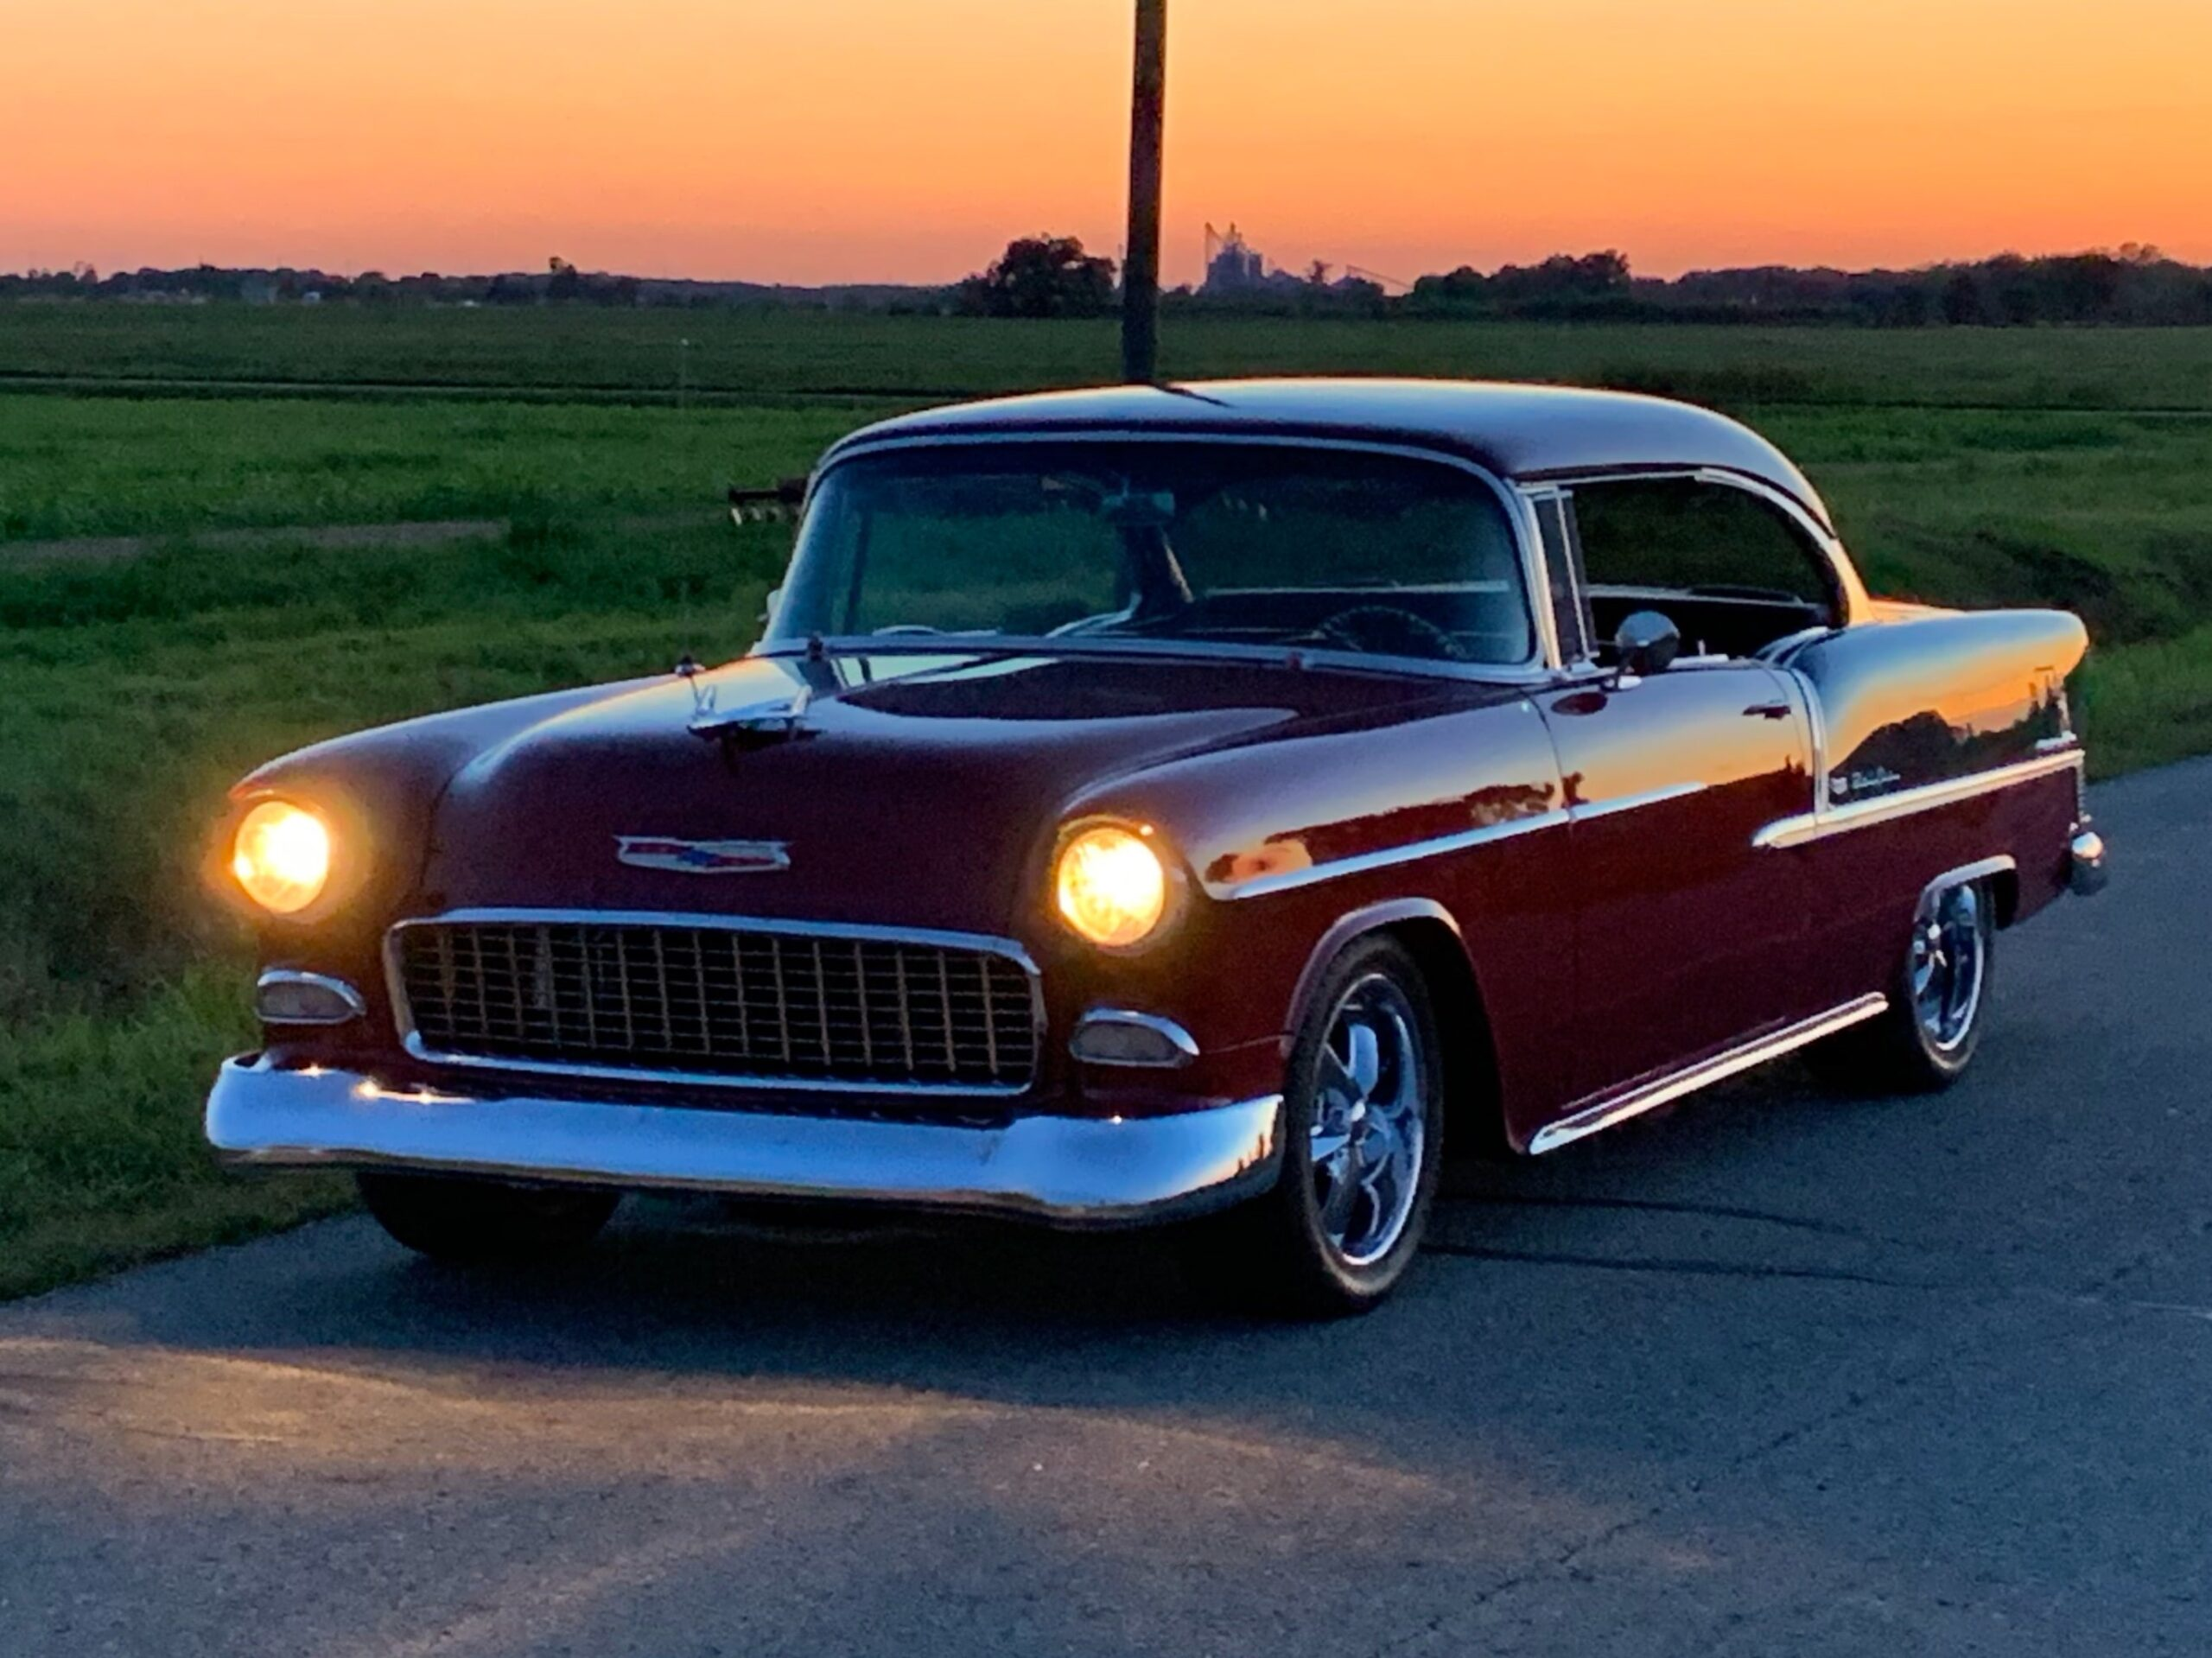 Chuck Bayes - Toledo, OH - 1955 Chevy Bel Air